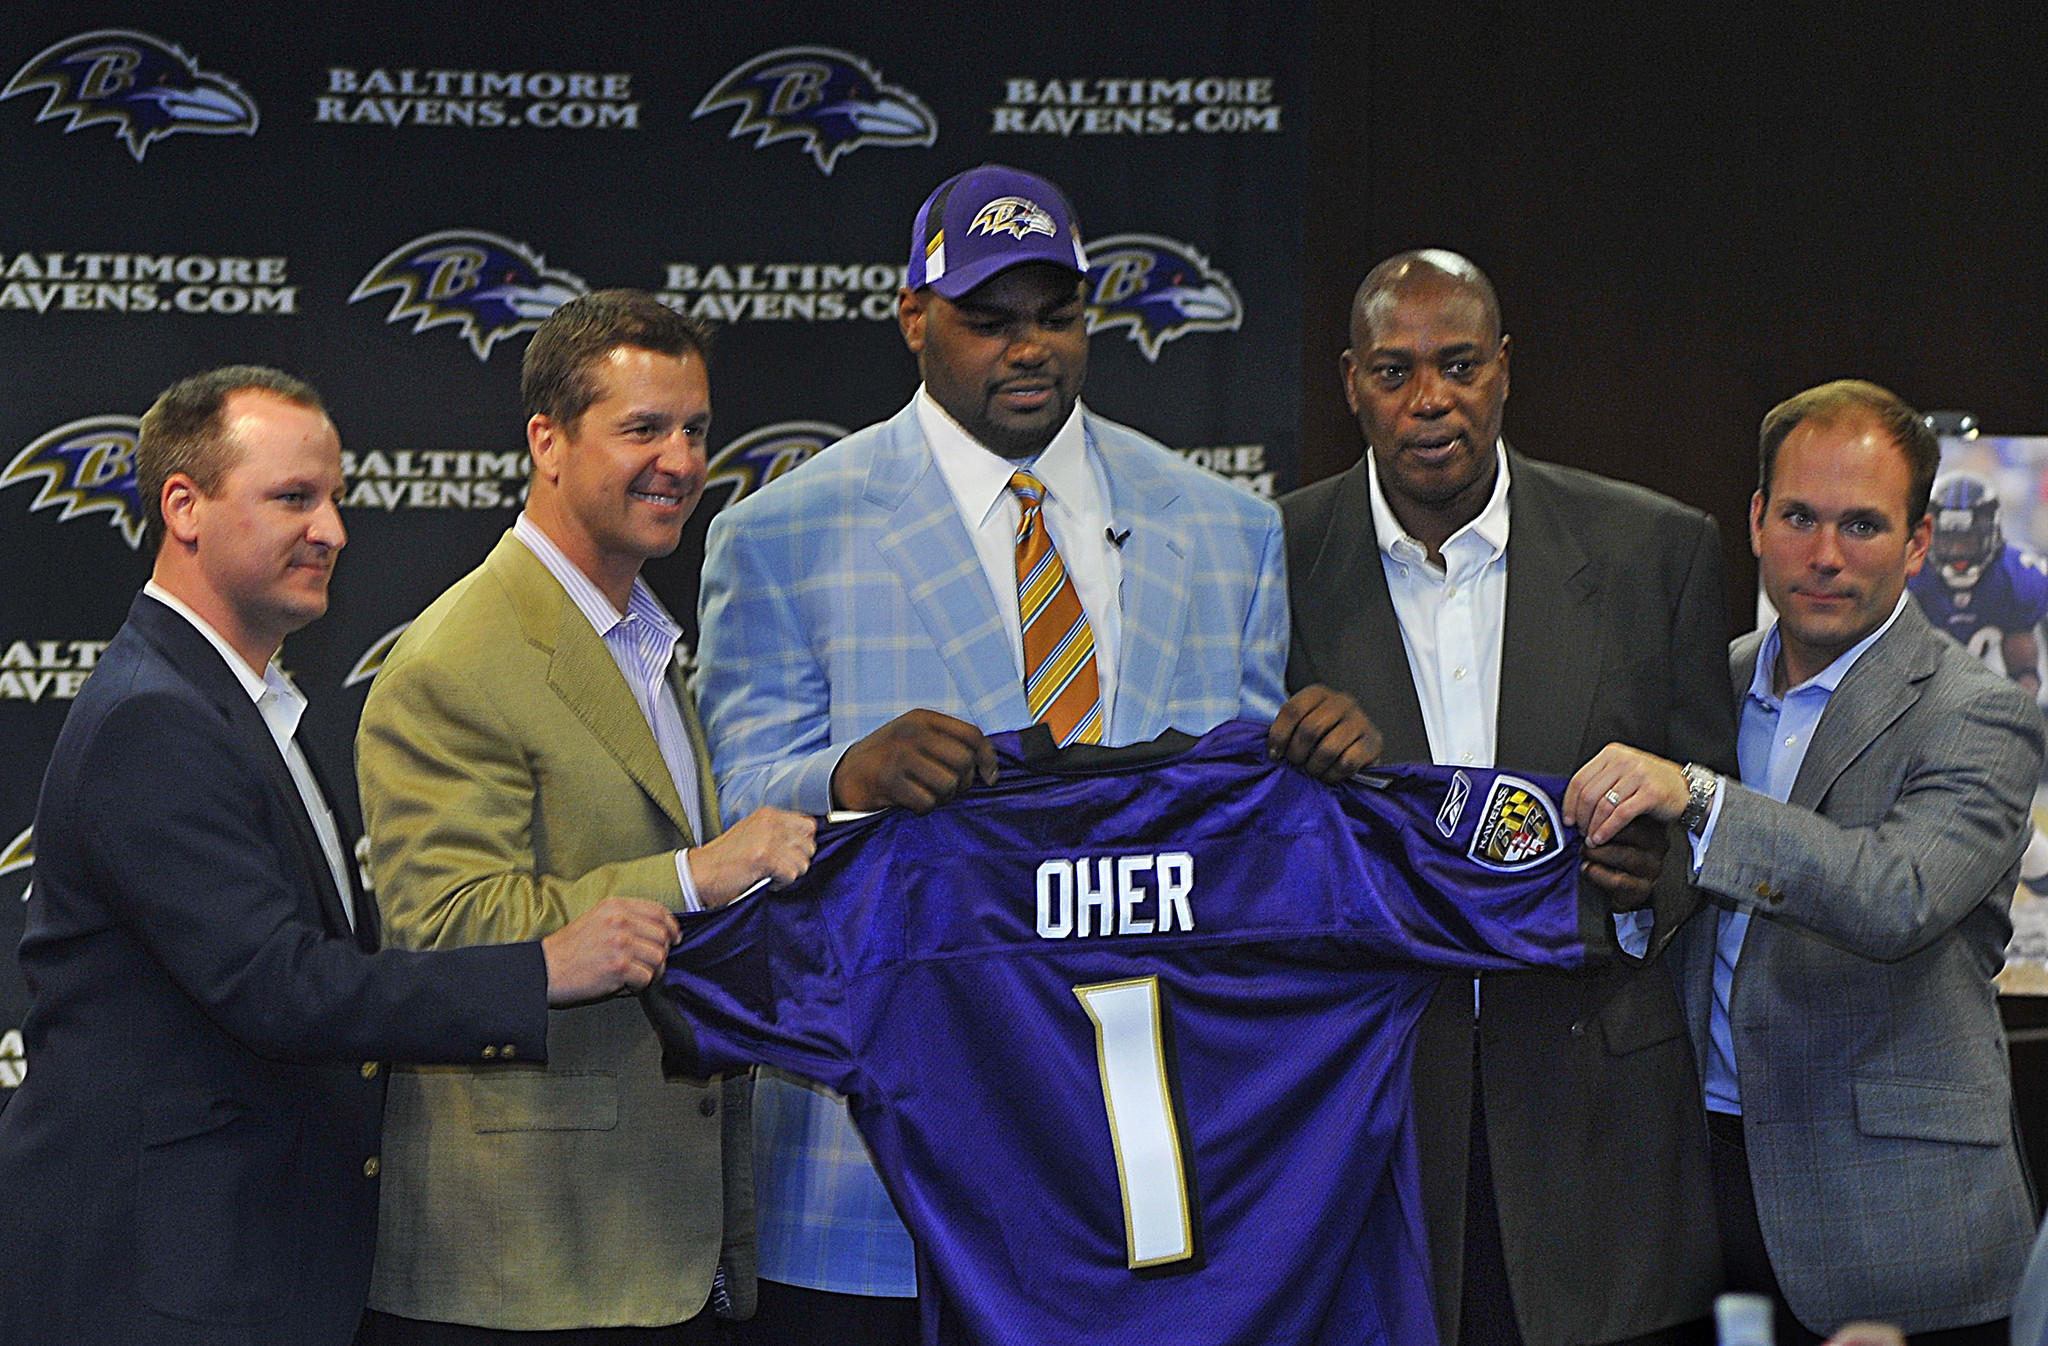 Michael Oher is the most recent offensive player to be taken by the Ravens in the first round of the NFL draft.